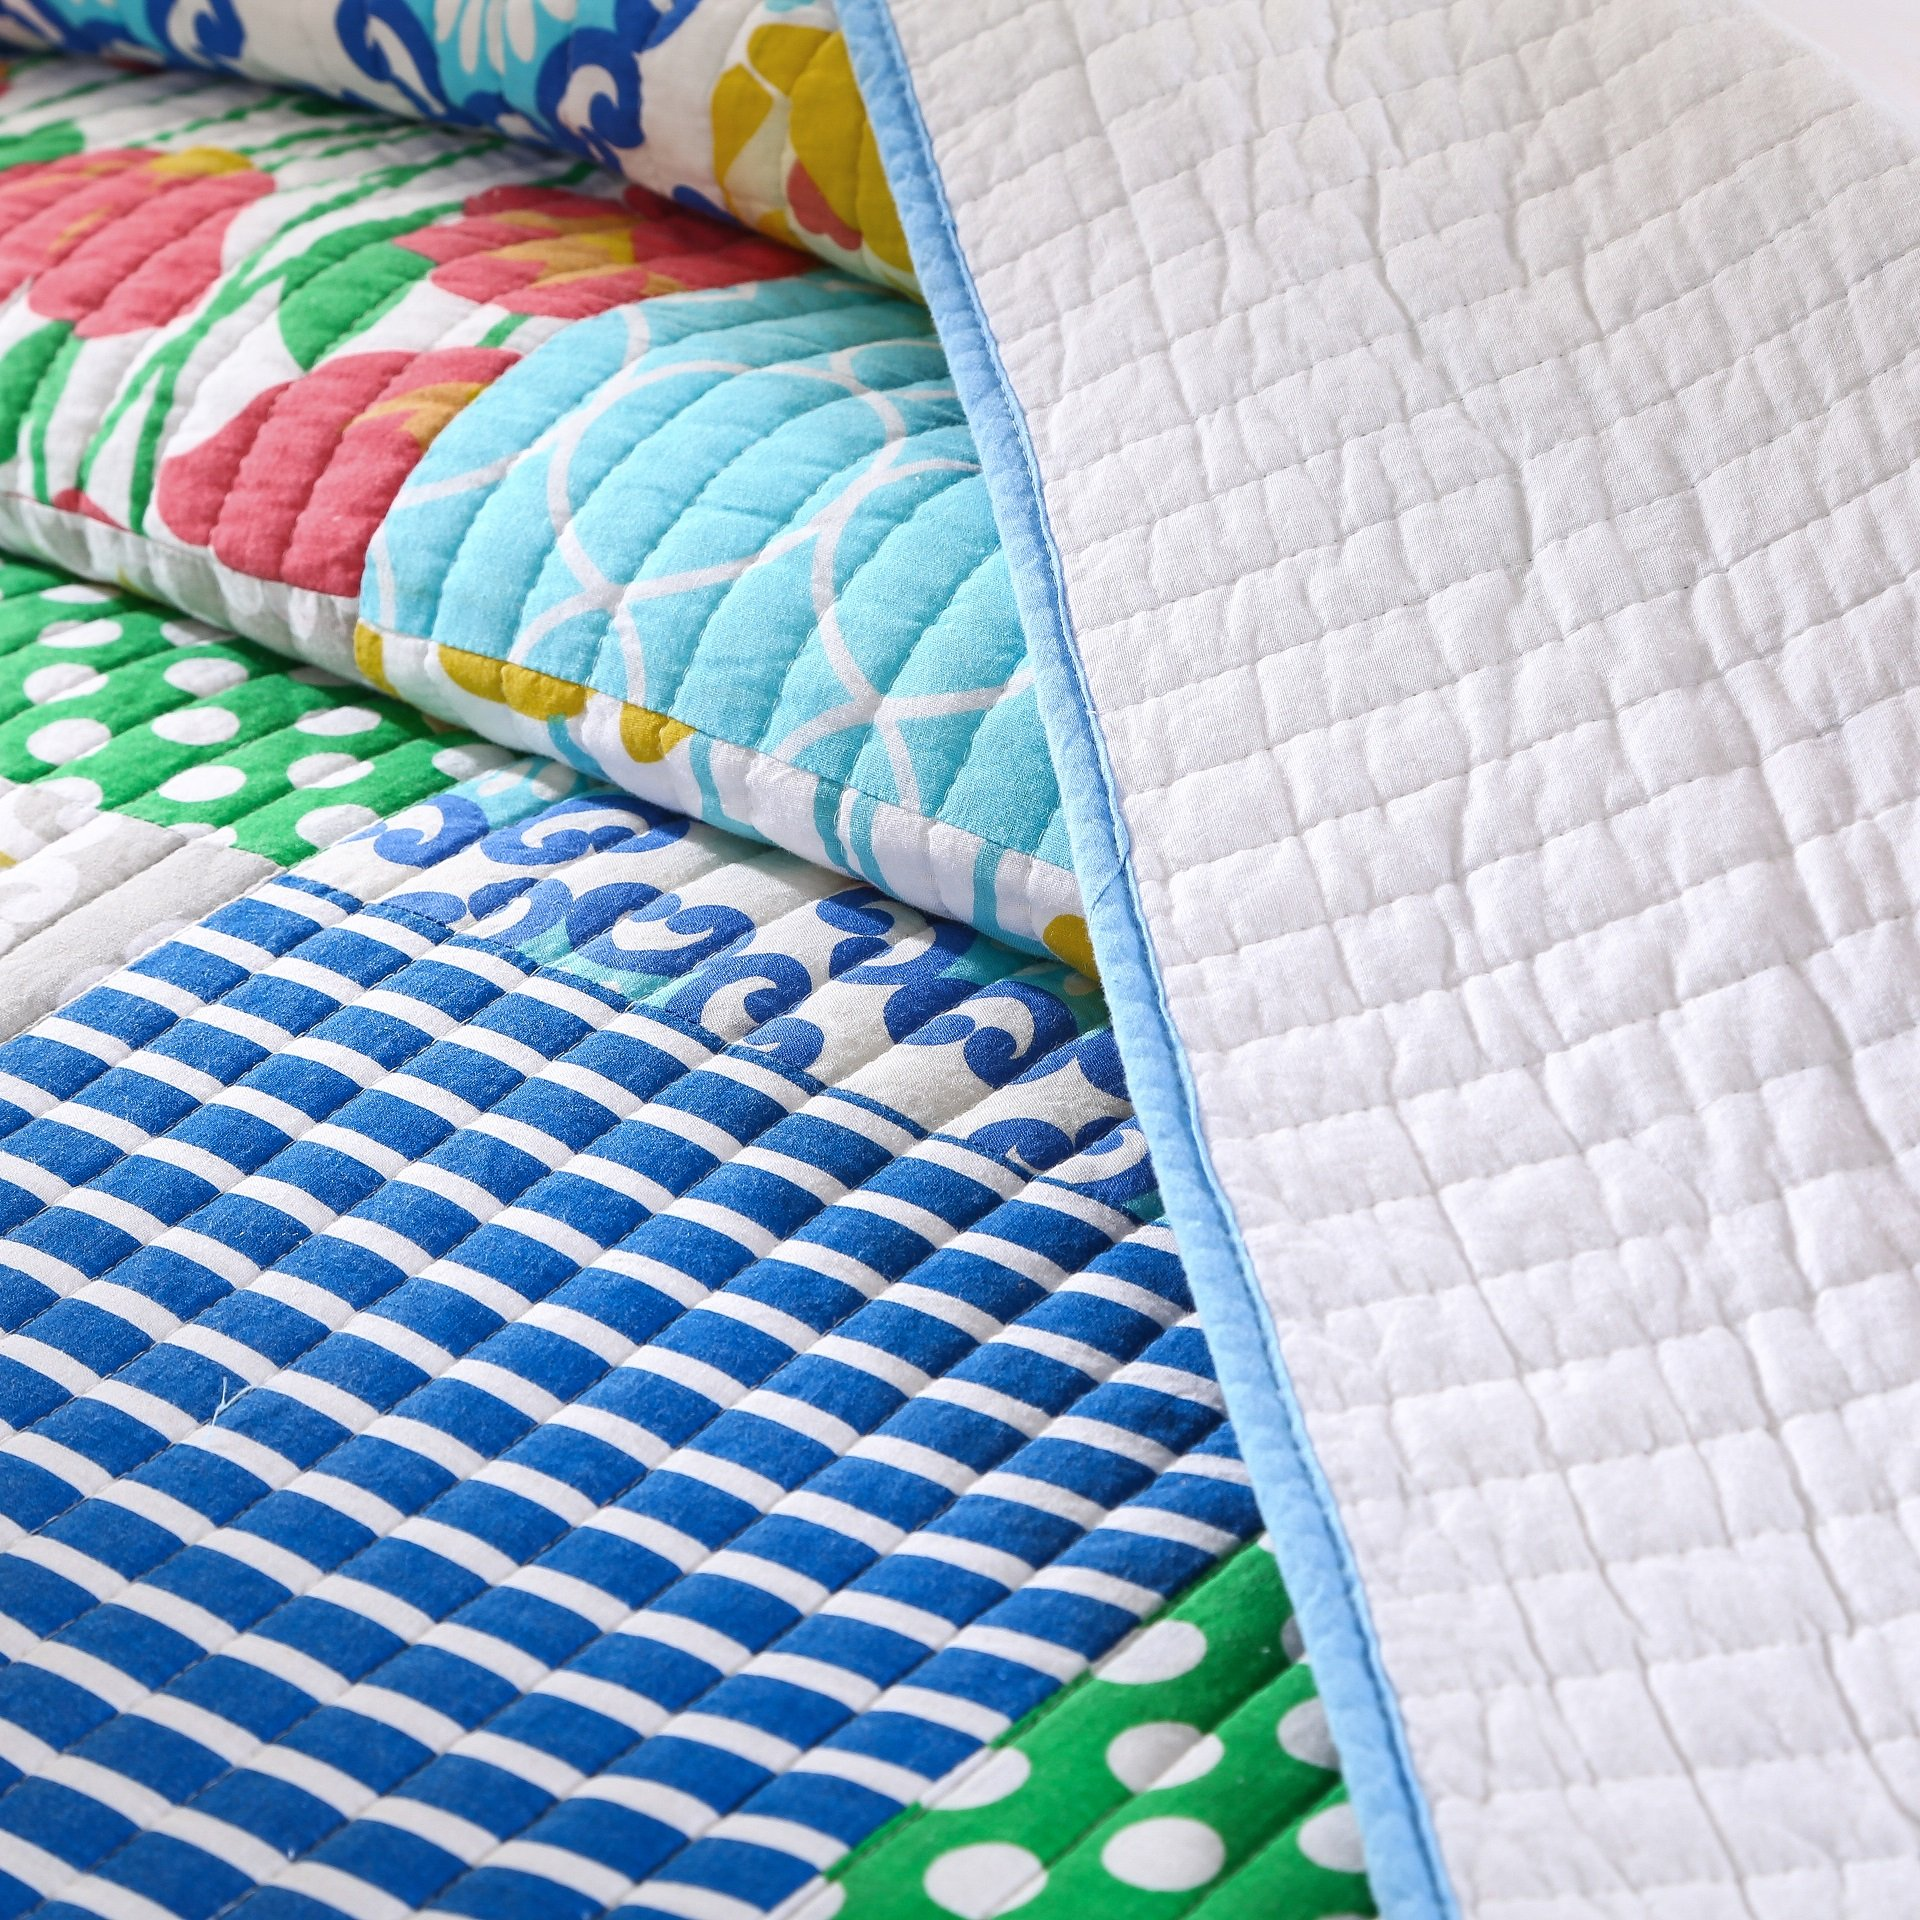 Tache Colorful Patchwork Quilt Bedspread - Dreamy Meadow - 3 Piece Cotton Spring Summer Floral Quilted Bedding Set - Pink, Blue, Yellow - King